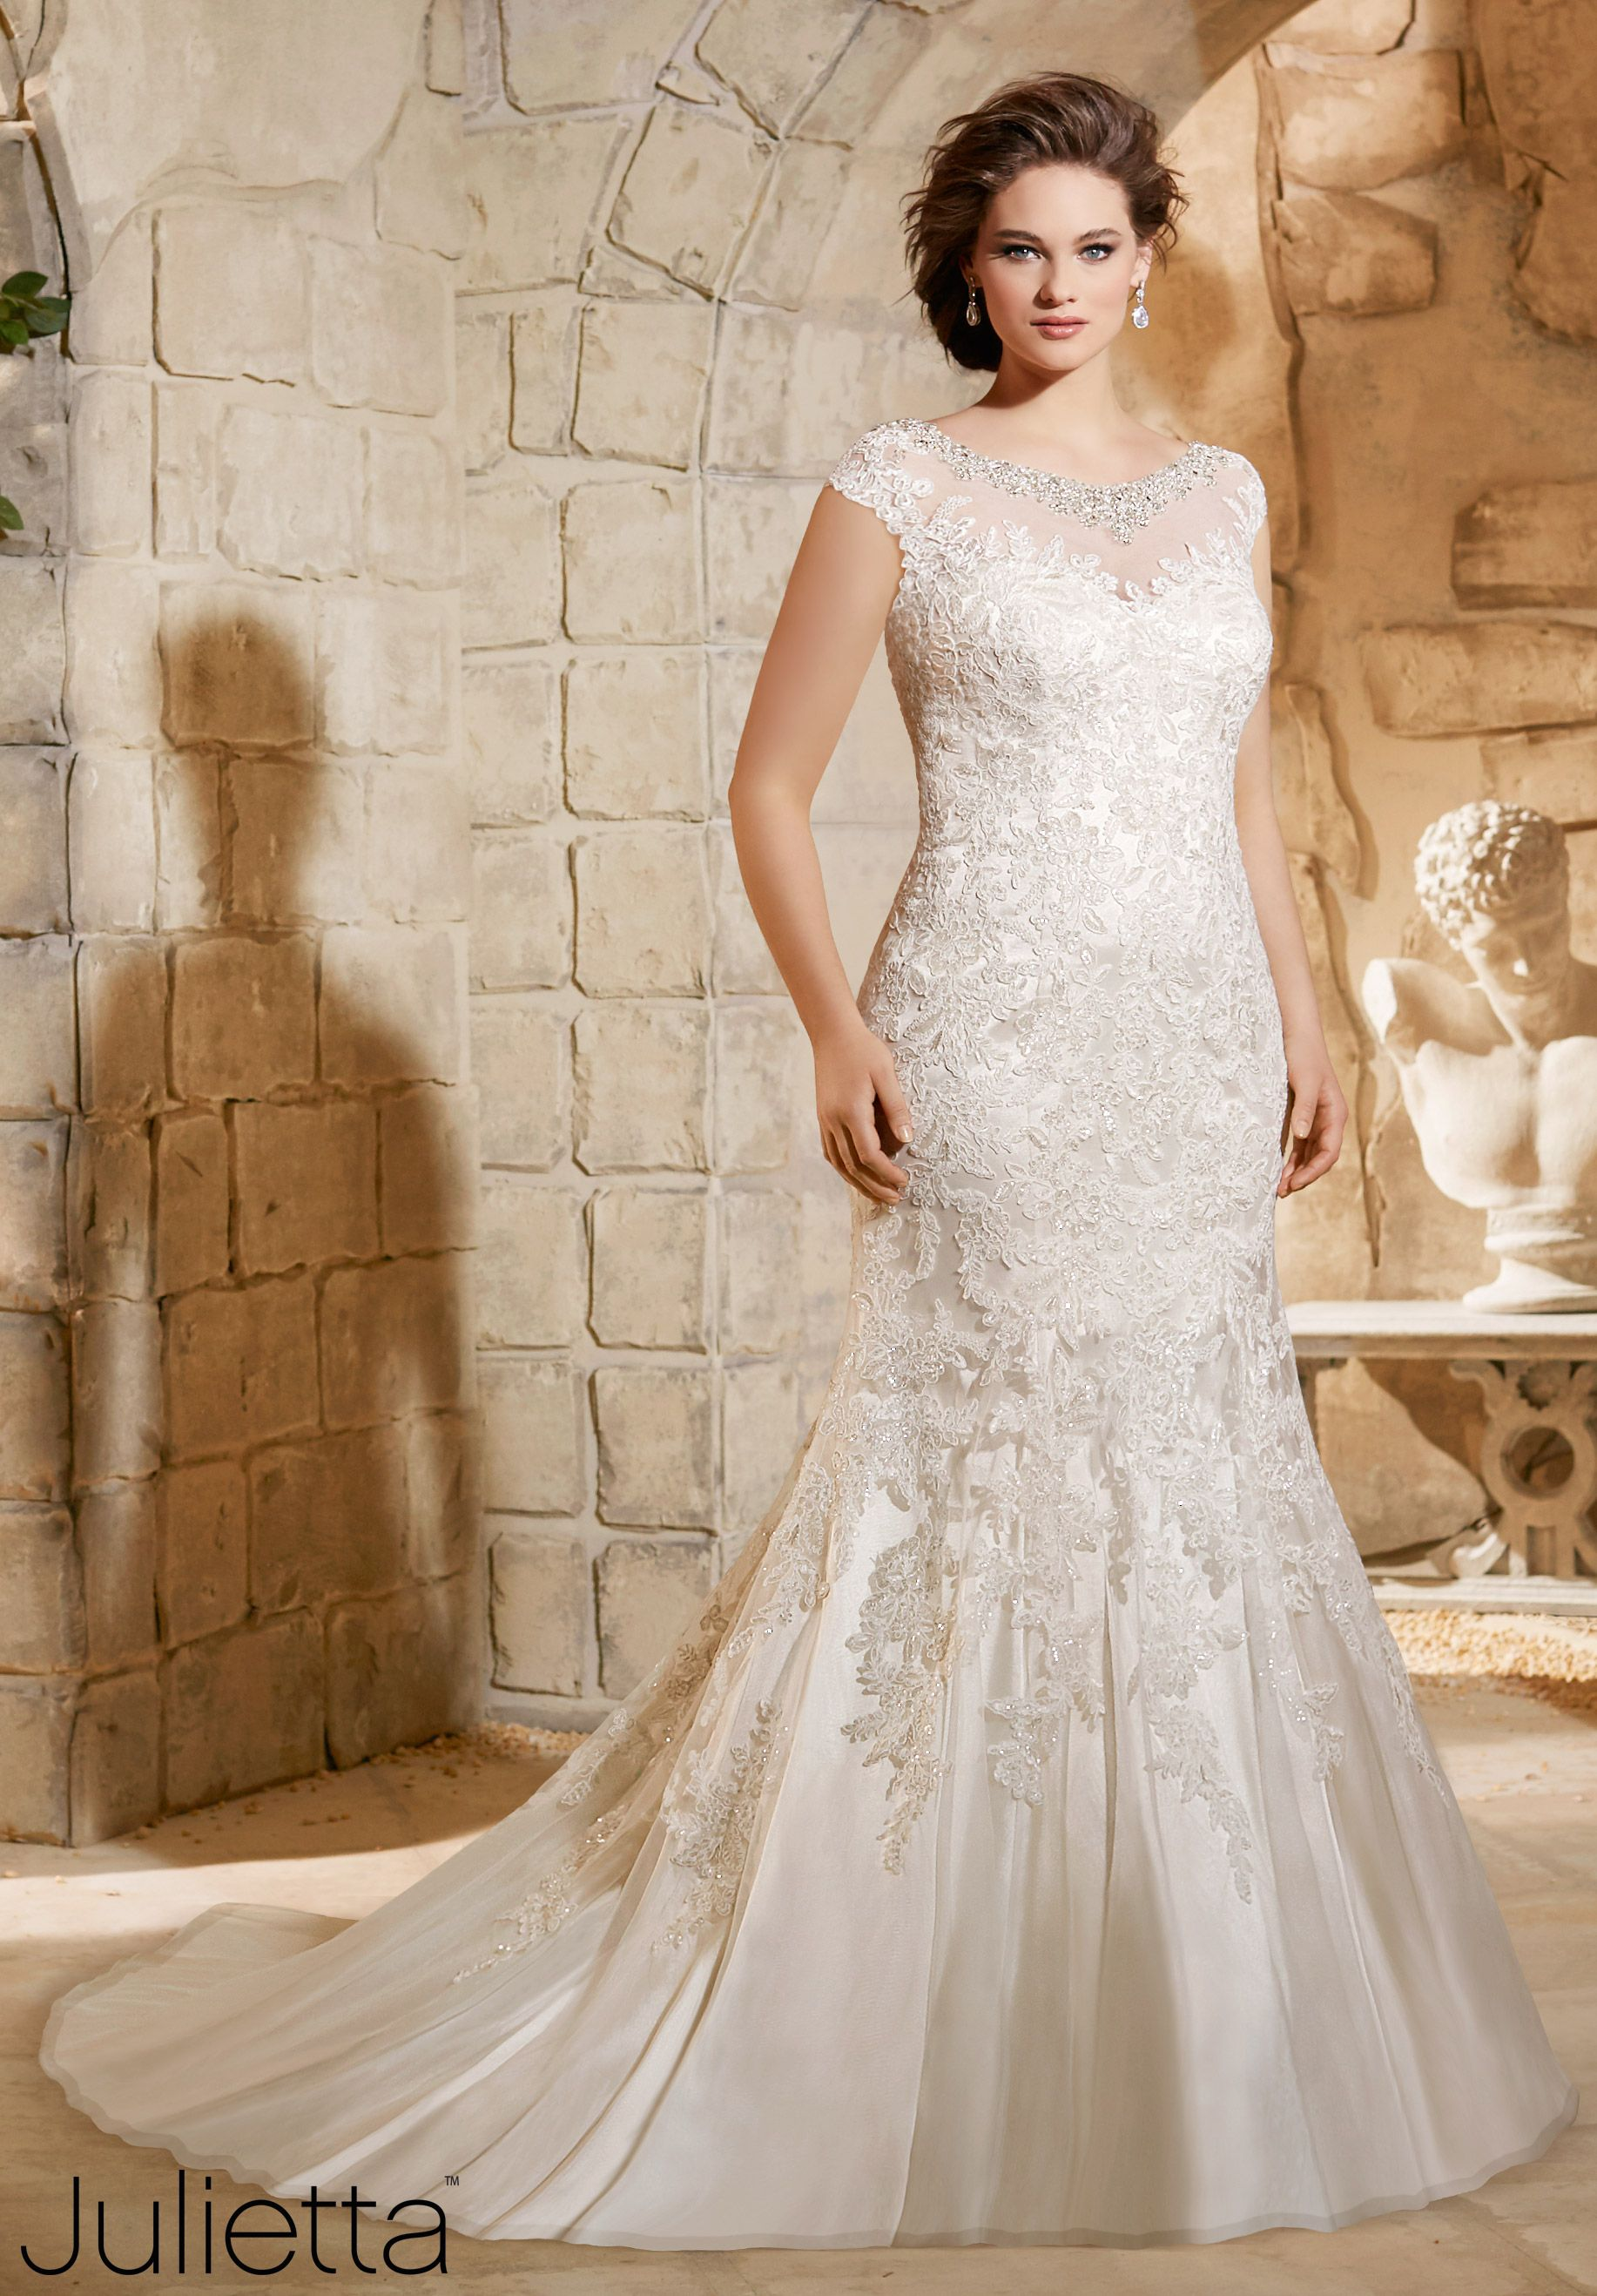 julietta wedding dress Plus Size Wedding Dresses Crystal Beaded Embroidery with Sparkling Lace Appliques on Soft Net